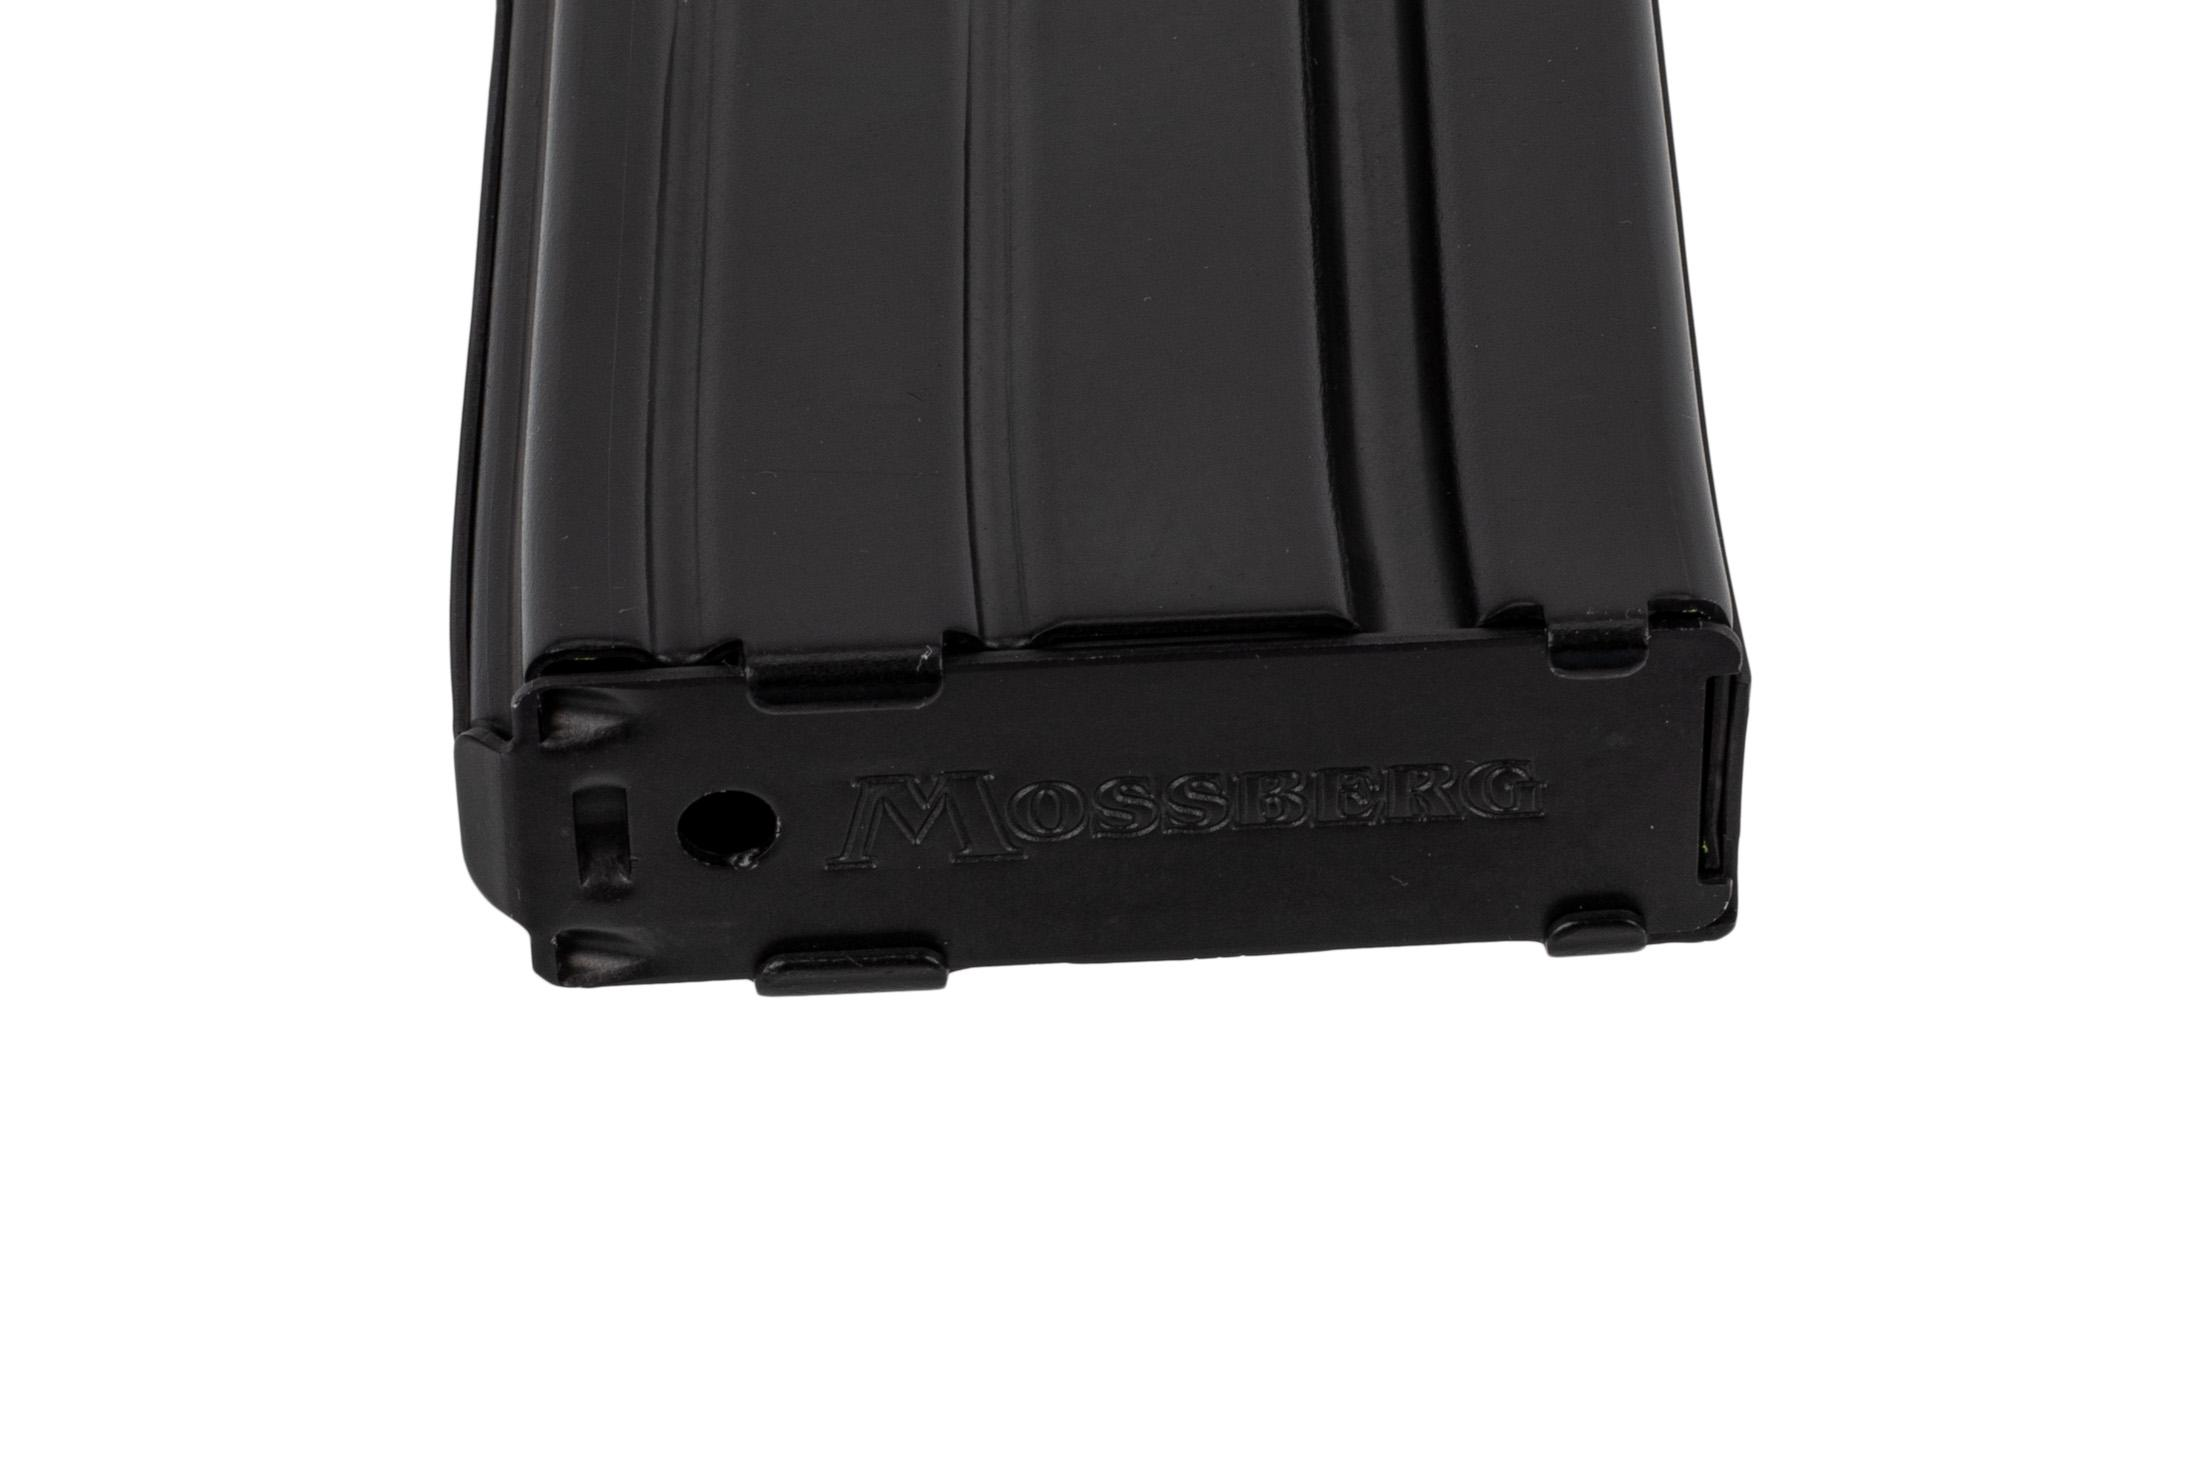 Mossberg 5.56 magazine 10 round features a stamped floor plate